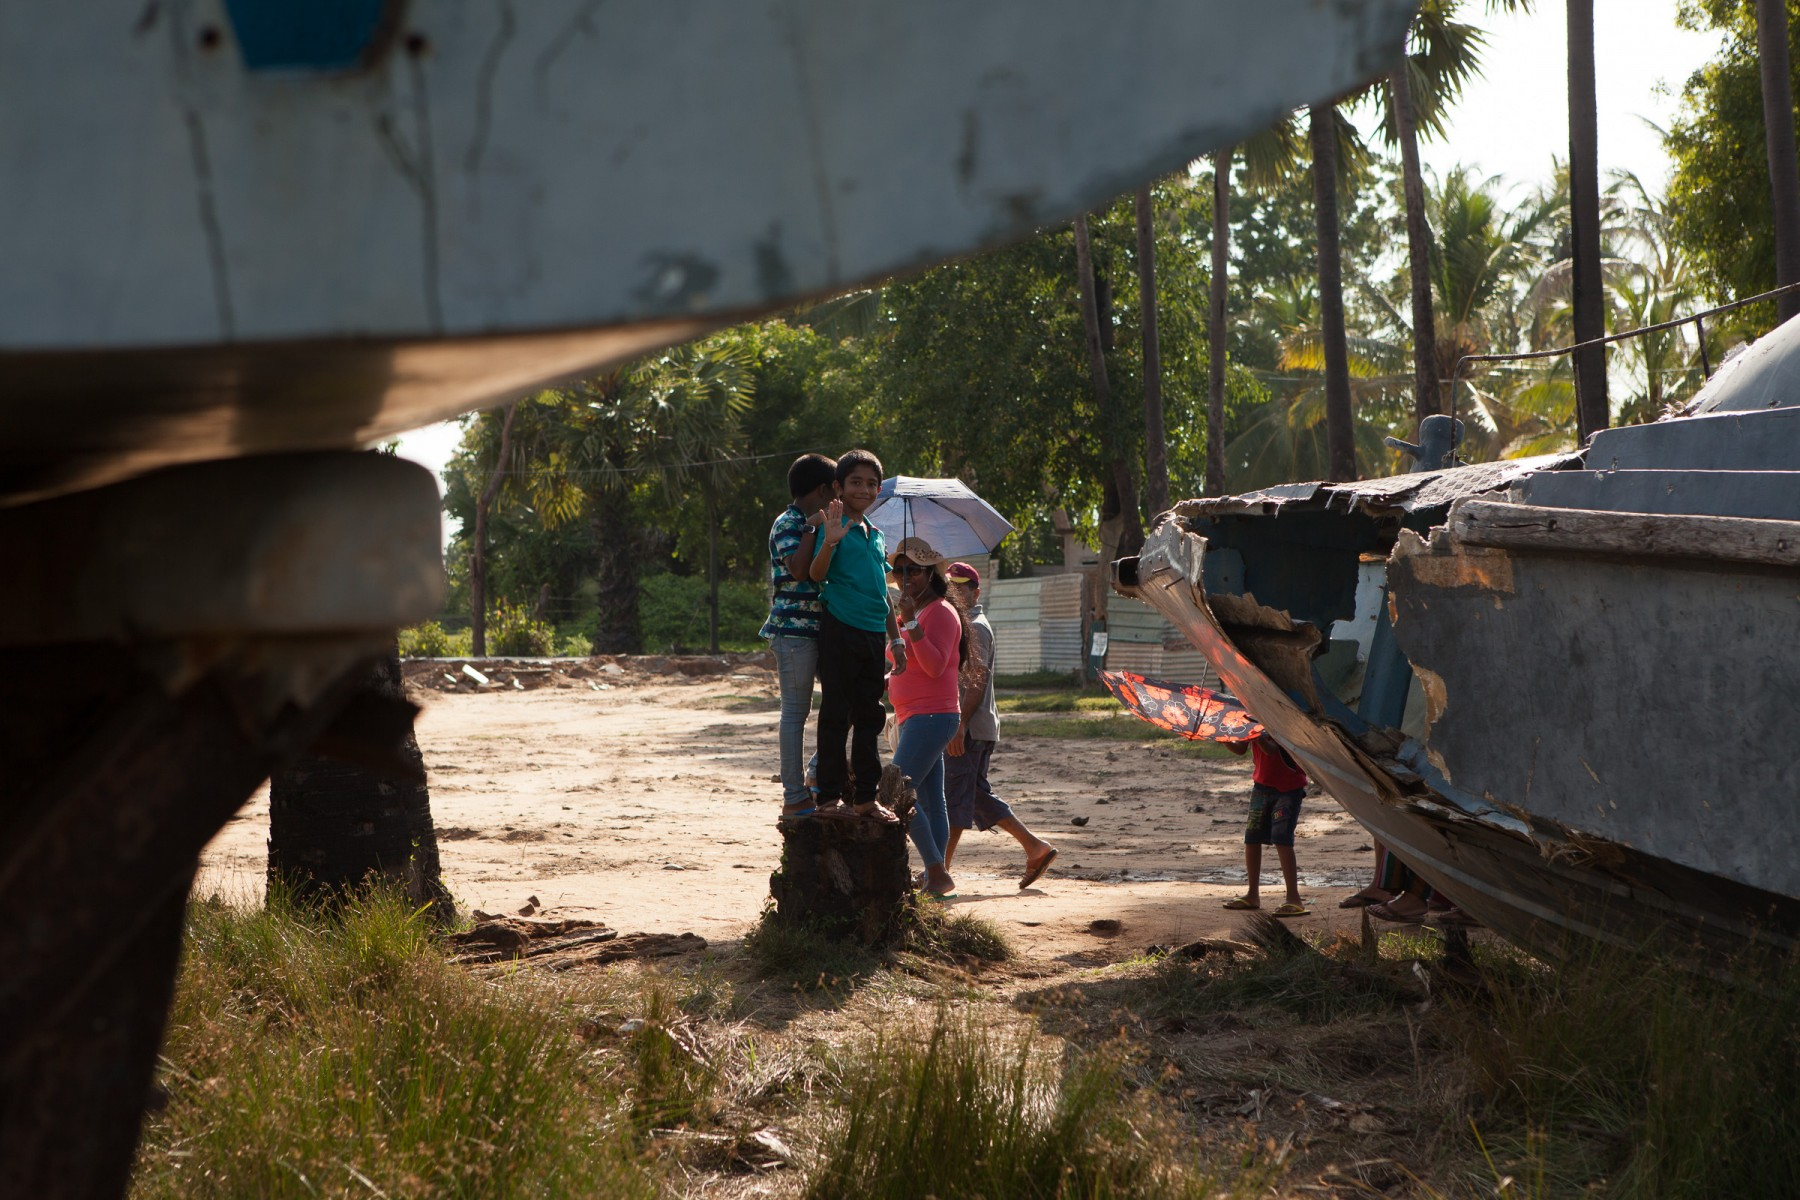 Local tourists take in the sight of 'Sea Tiger' ships in an open-air museum near Mullaitivu in northern Sri Lanka.